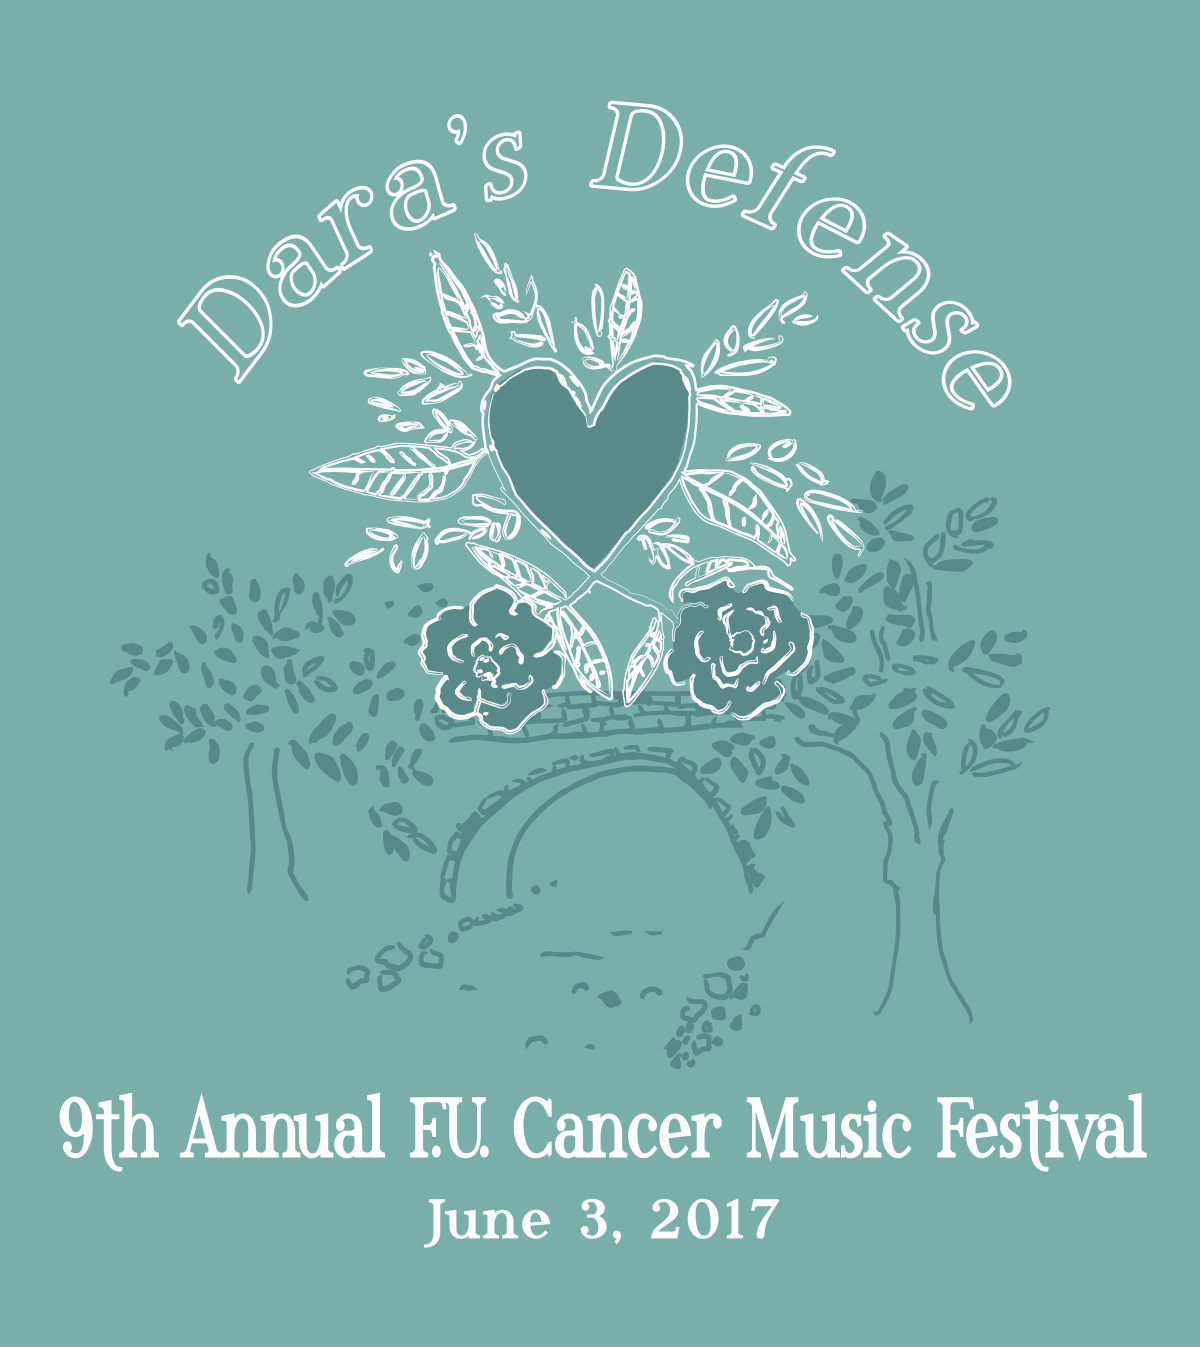 9th Annual FU Cancer Music Festival Tickets are On Sale